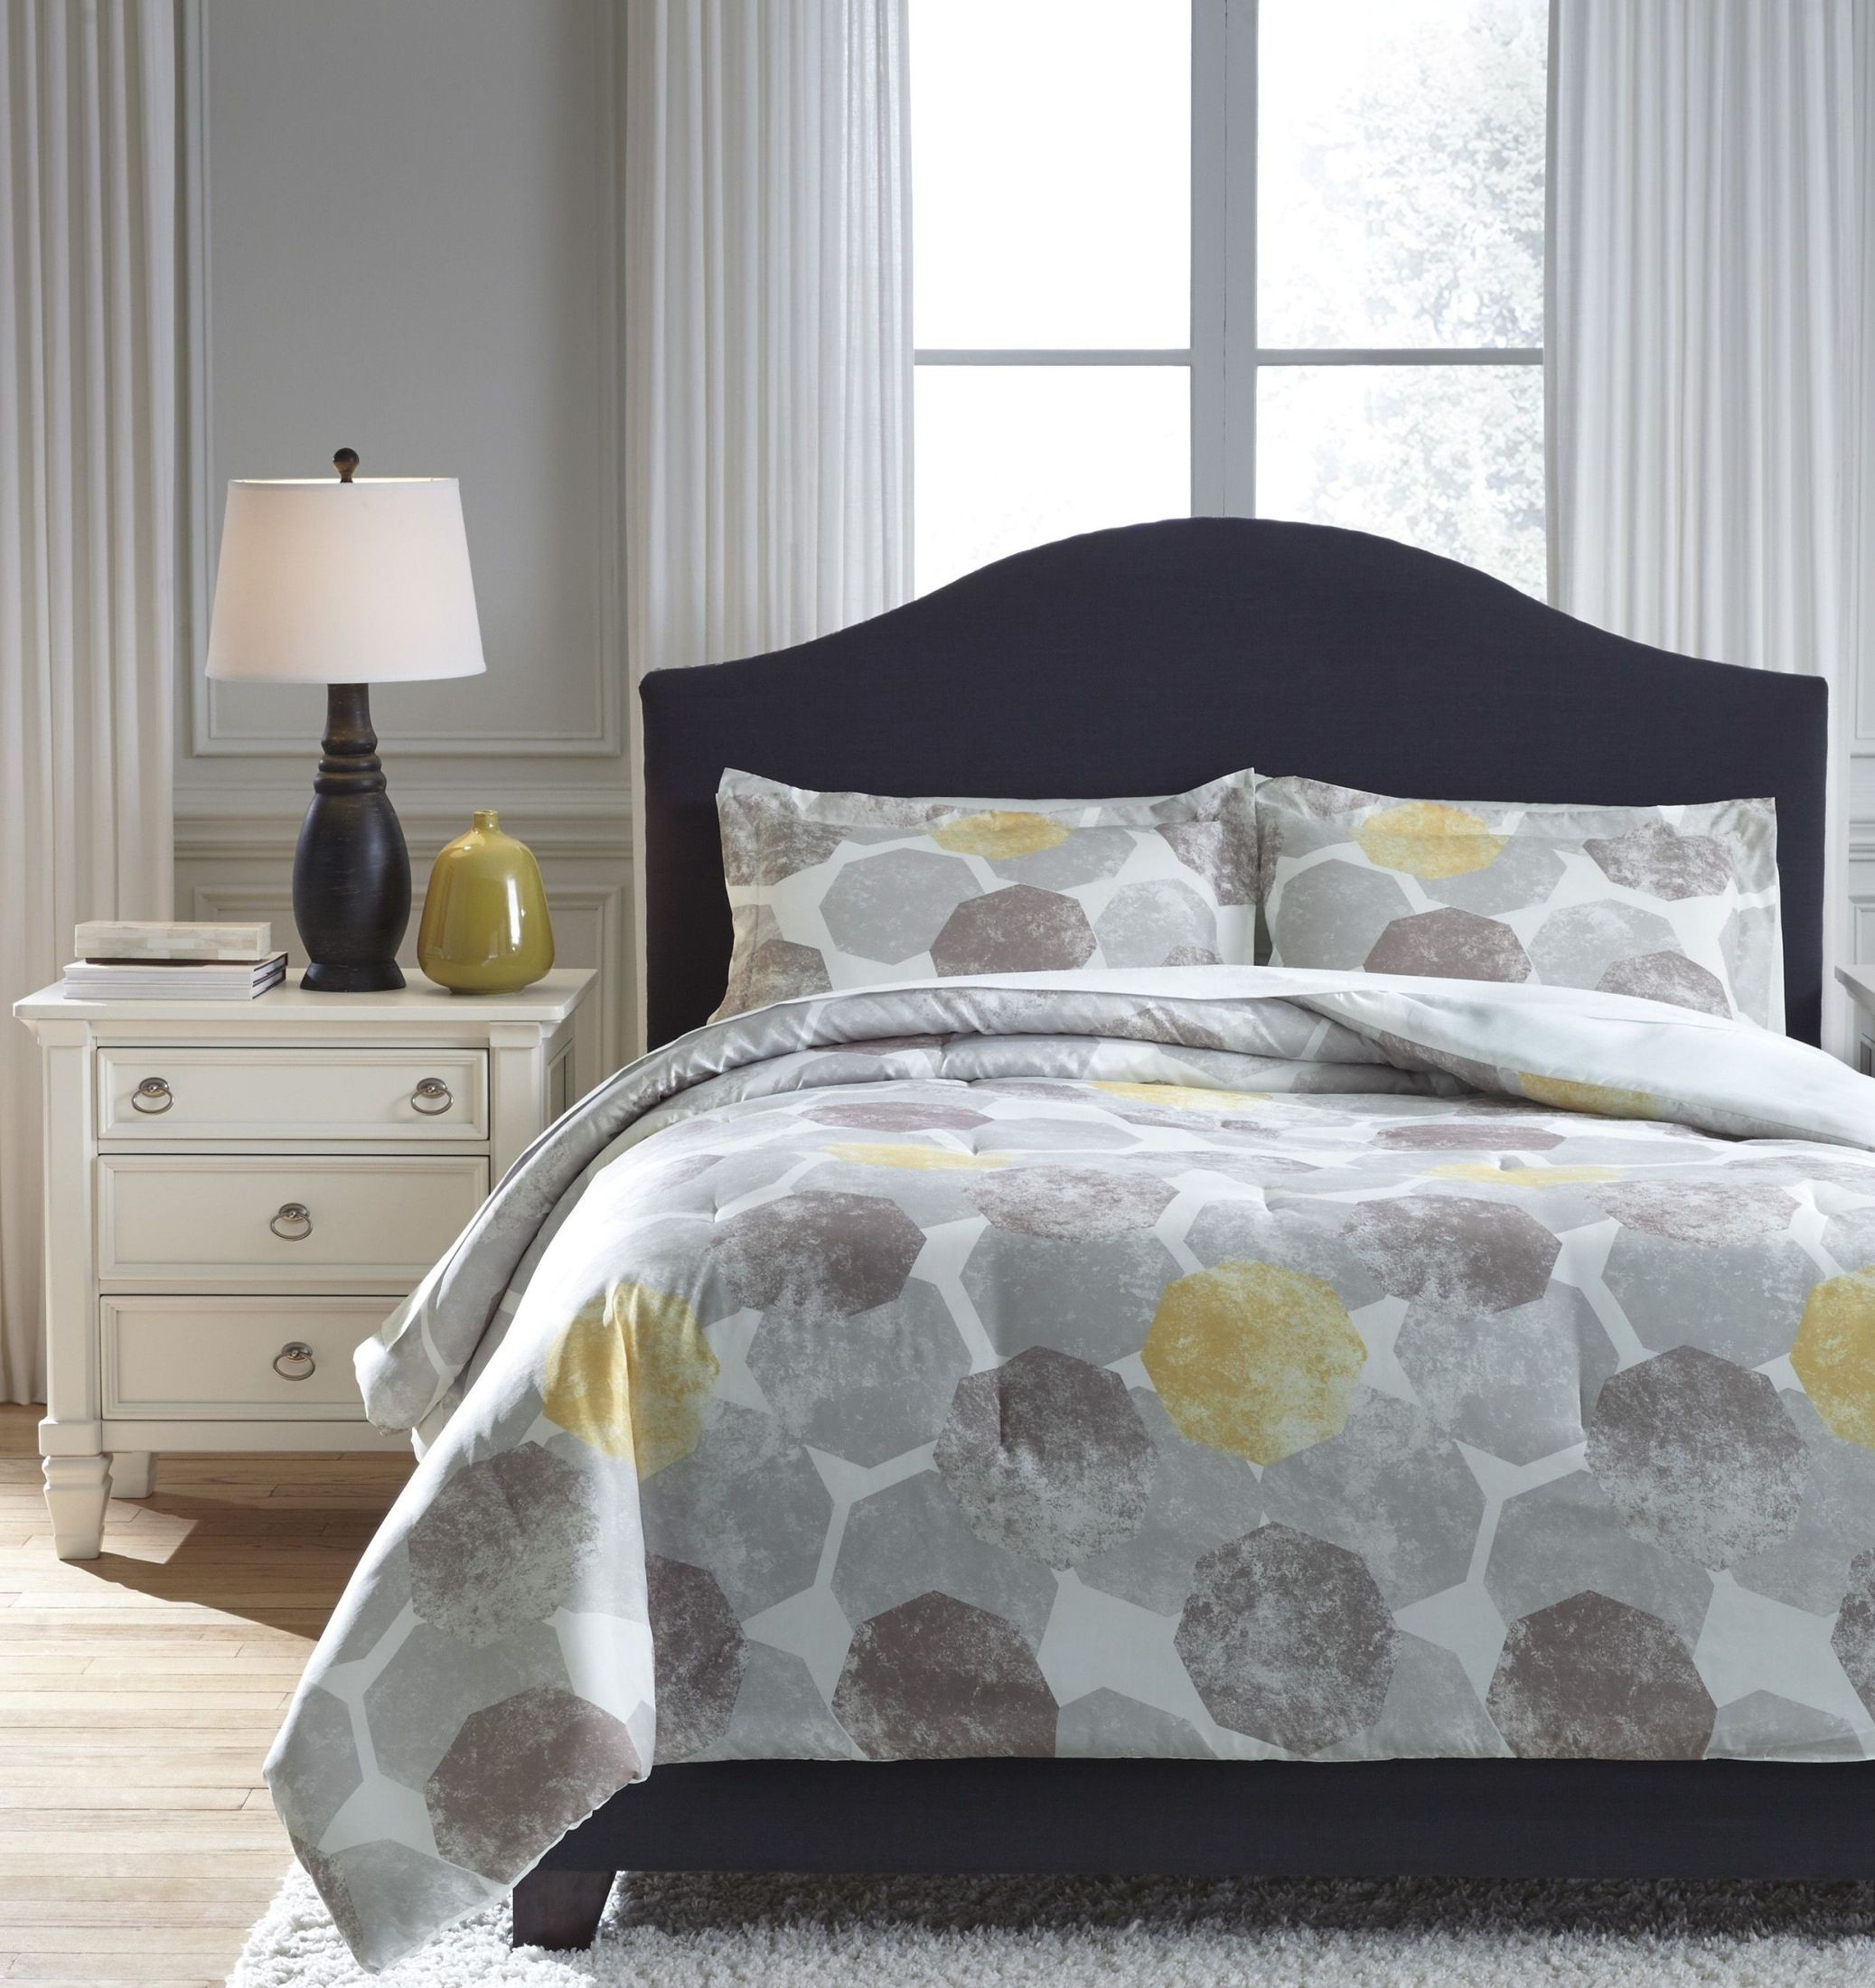 Gastonia Gray And Yellow King Comforter Set From Ashley